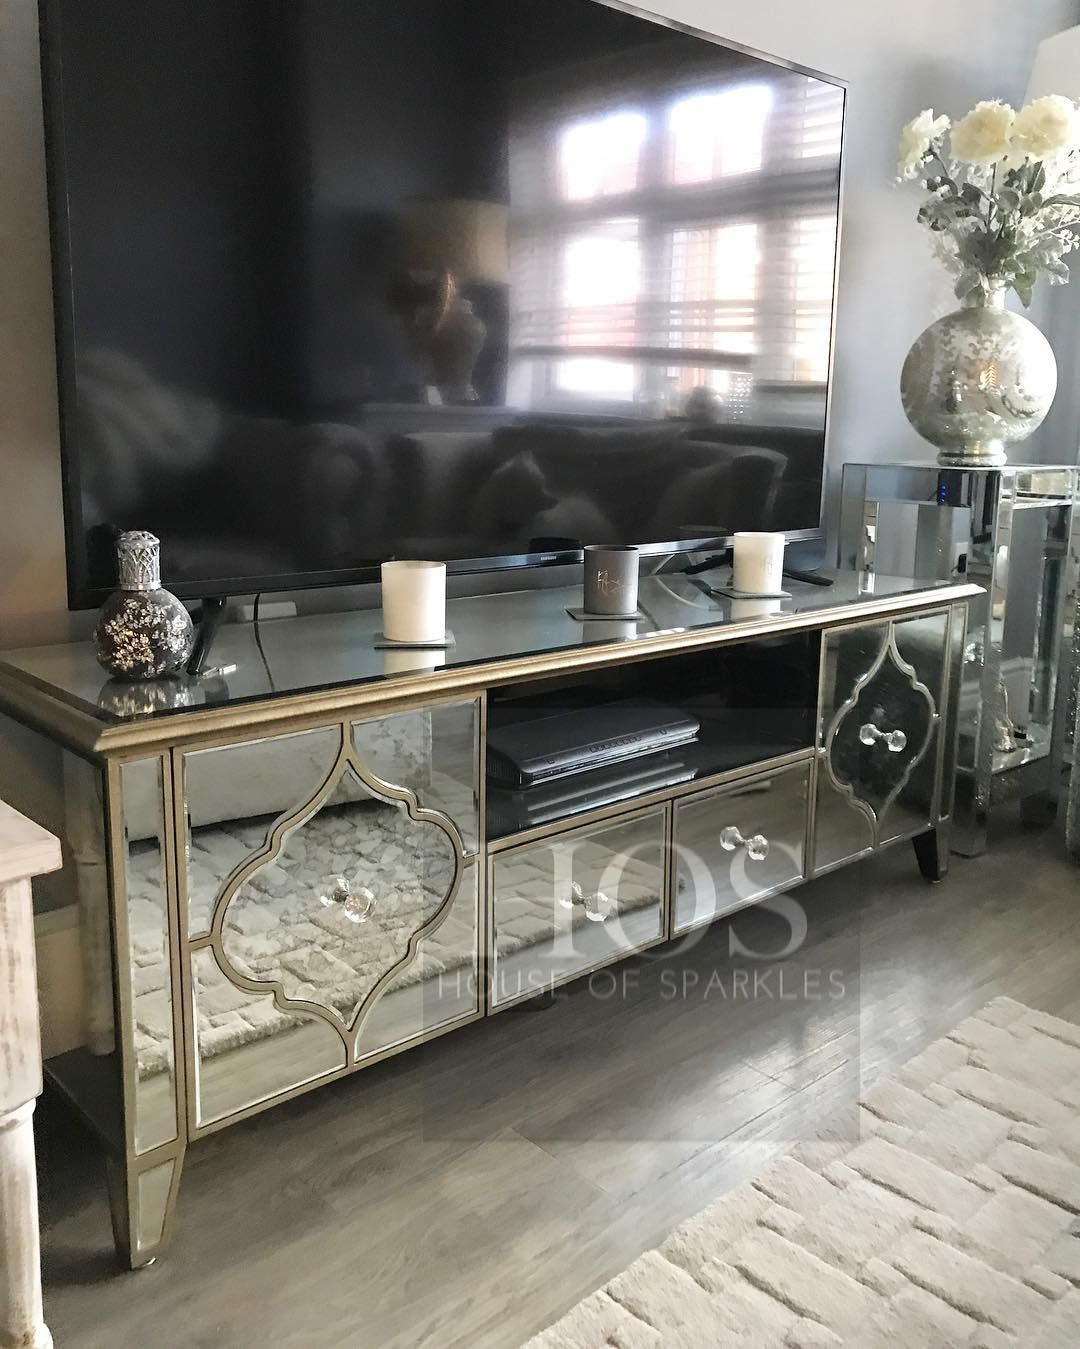 Sahara Media Unit Shop Now Www Houseofsparkles Co Uk 0